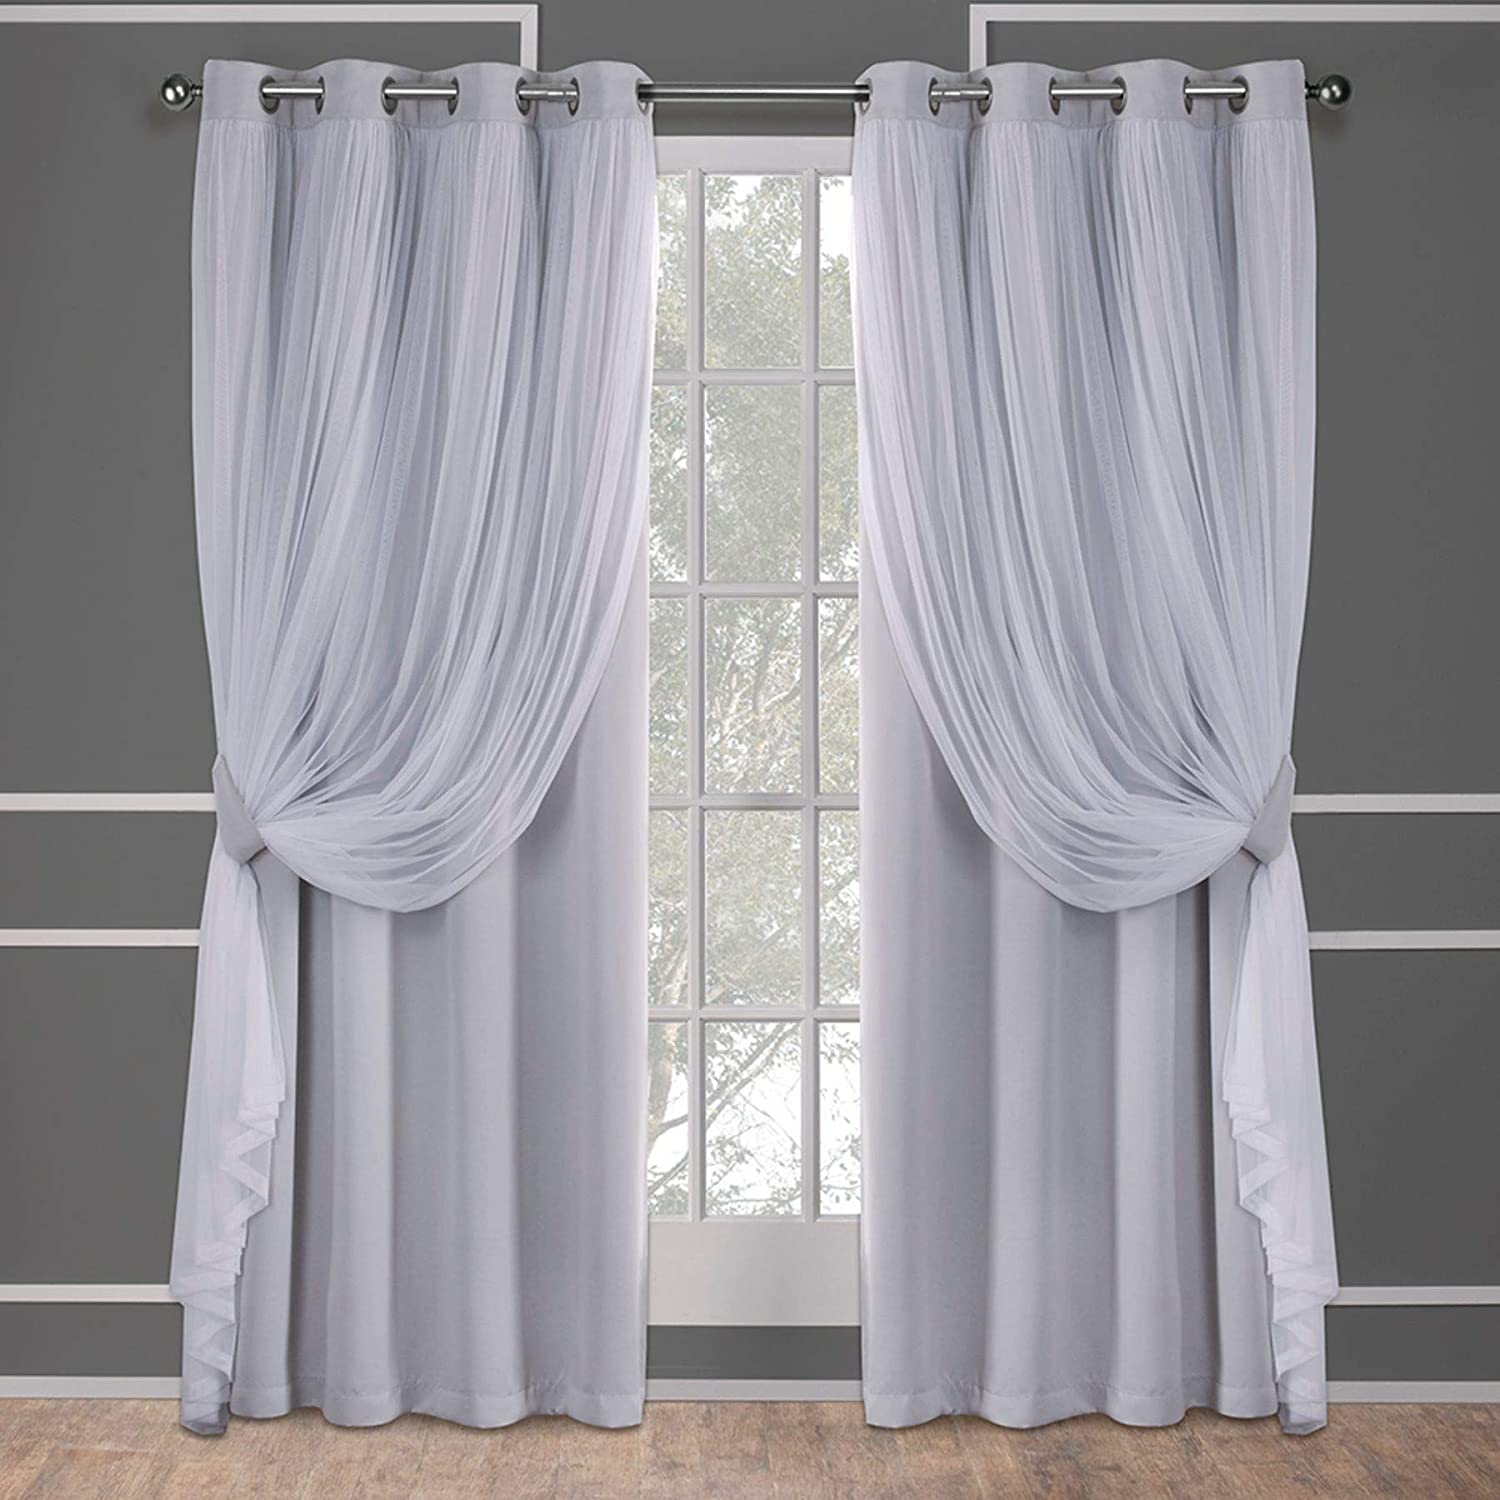 Exclusive Home Catarina Layered Solid Blackout And Sheer Grommet Top Curtain Panel Pair Cloud Grey 52x96 2 Piece Amazon Ca Home Kitchen